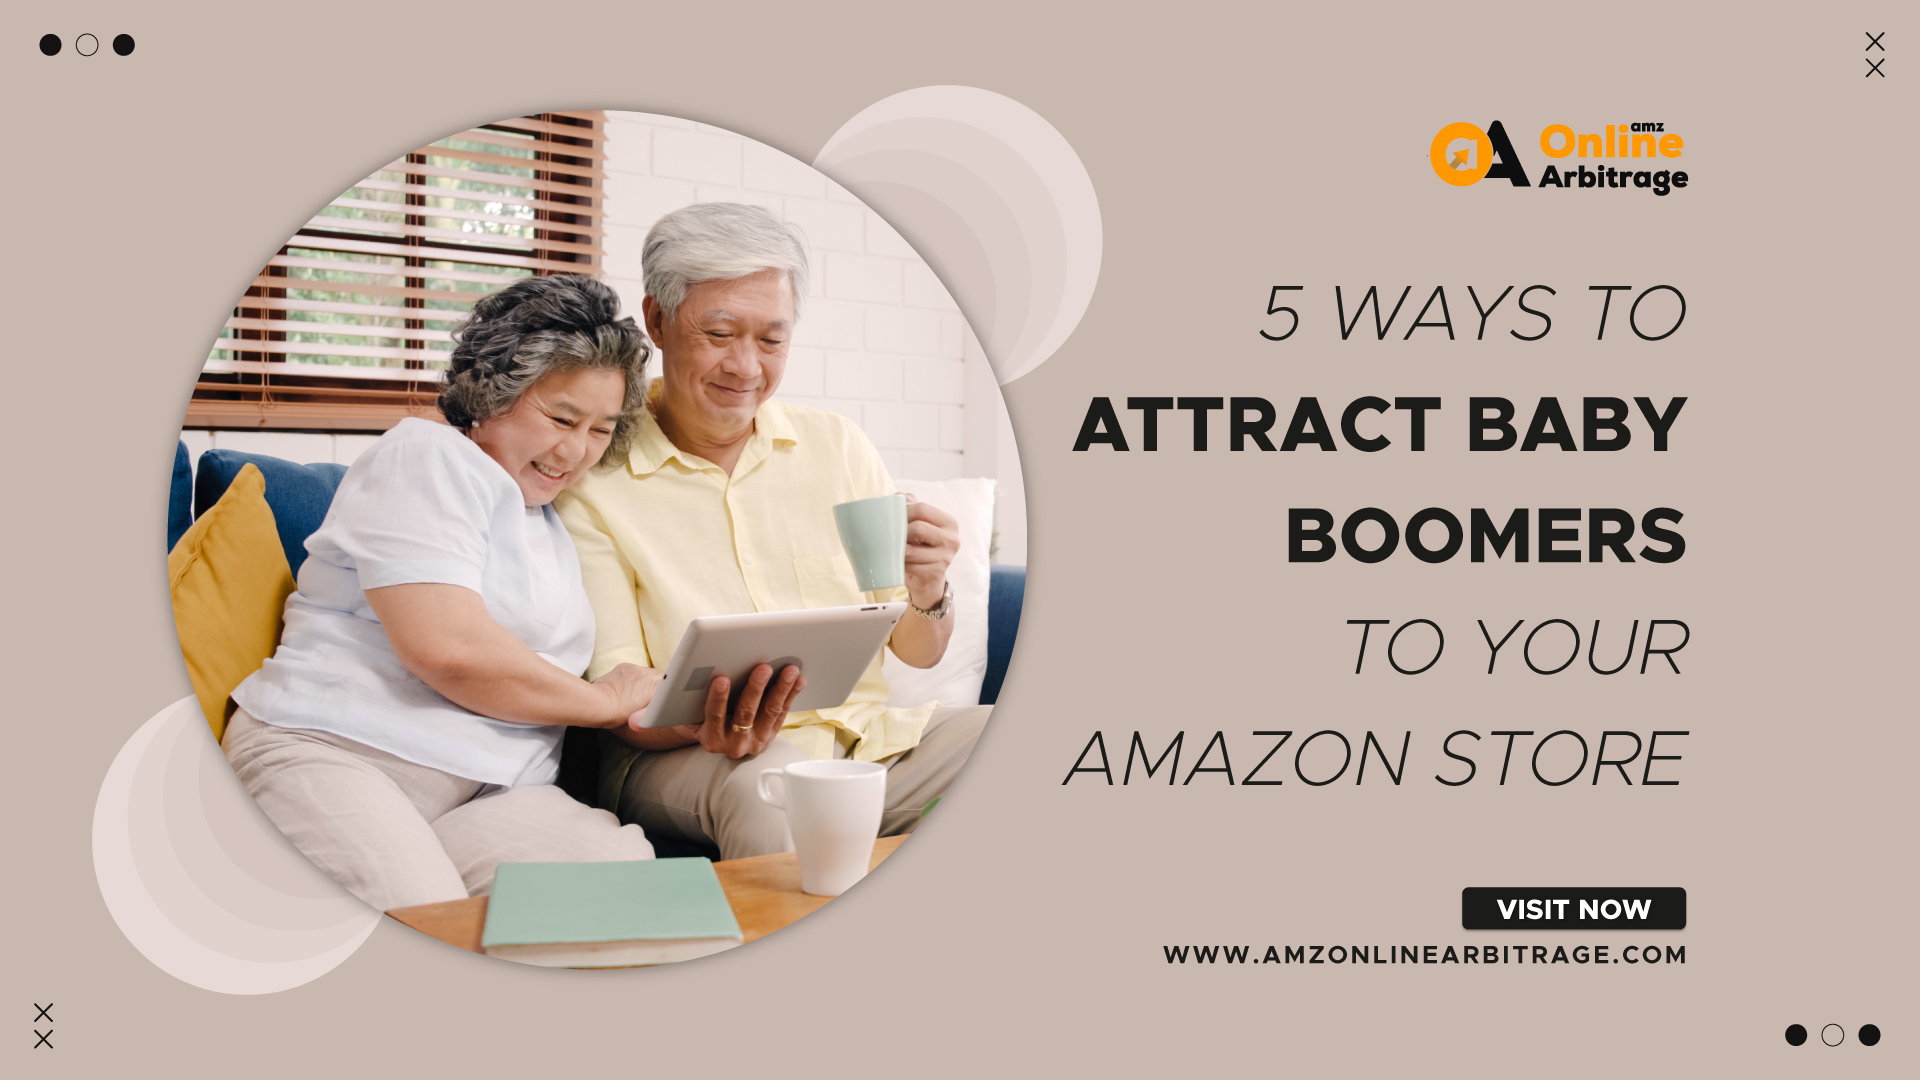 5 WAYS TO ATTRACT BABY BOOMERS TO YOUR AMAZON STORE